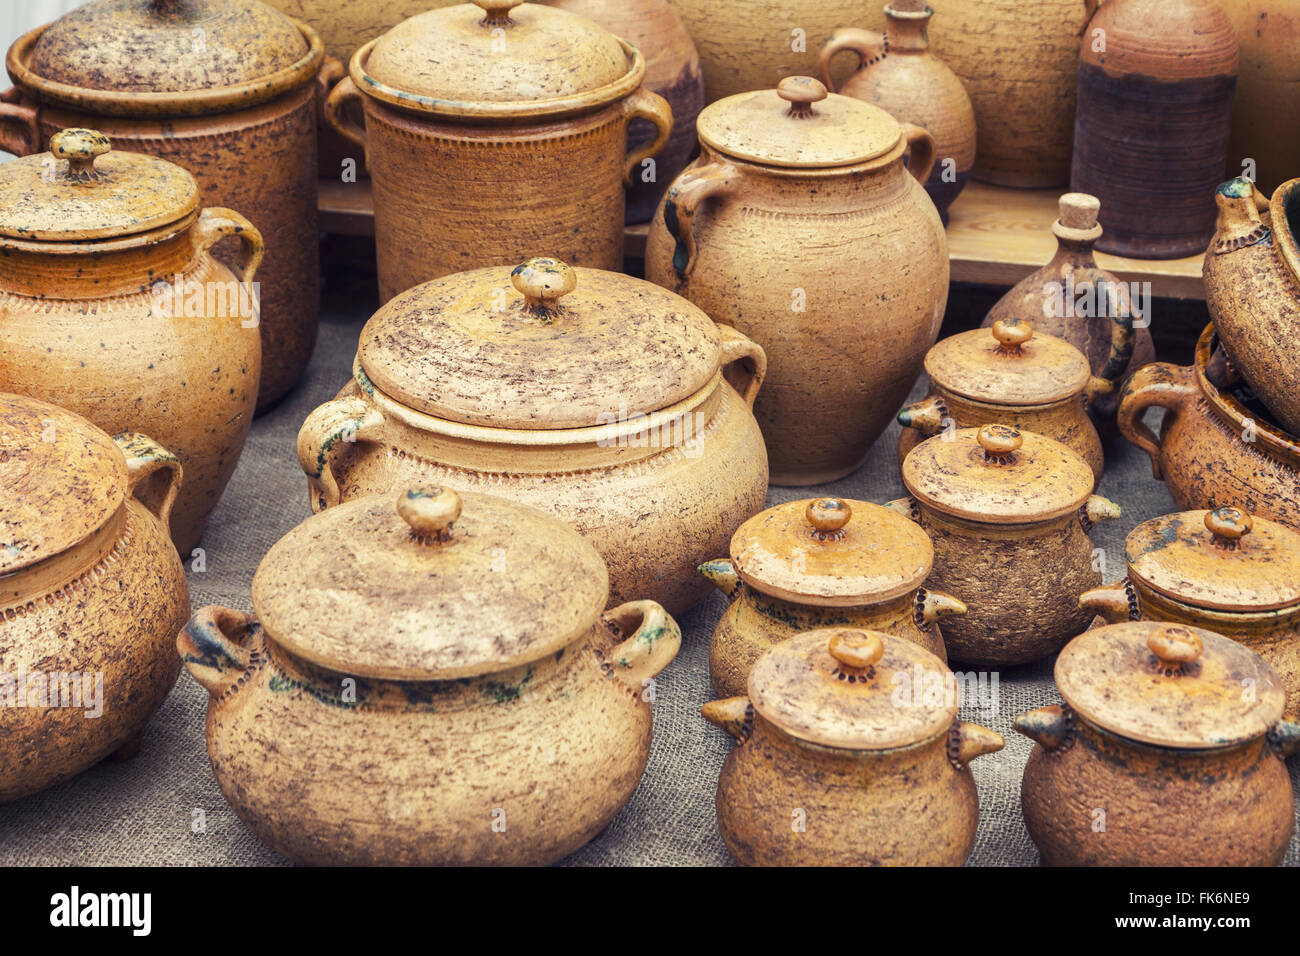 Group of traditional handmade pottery - Stock Image